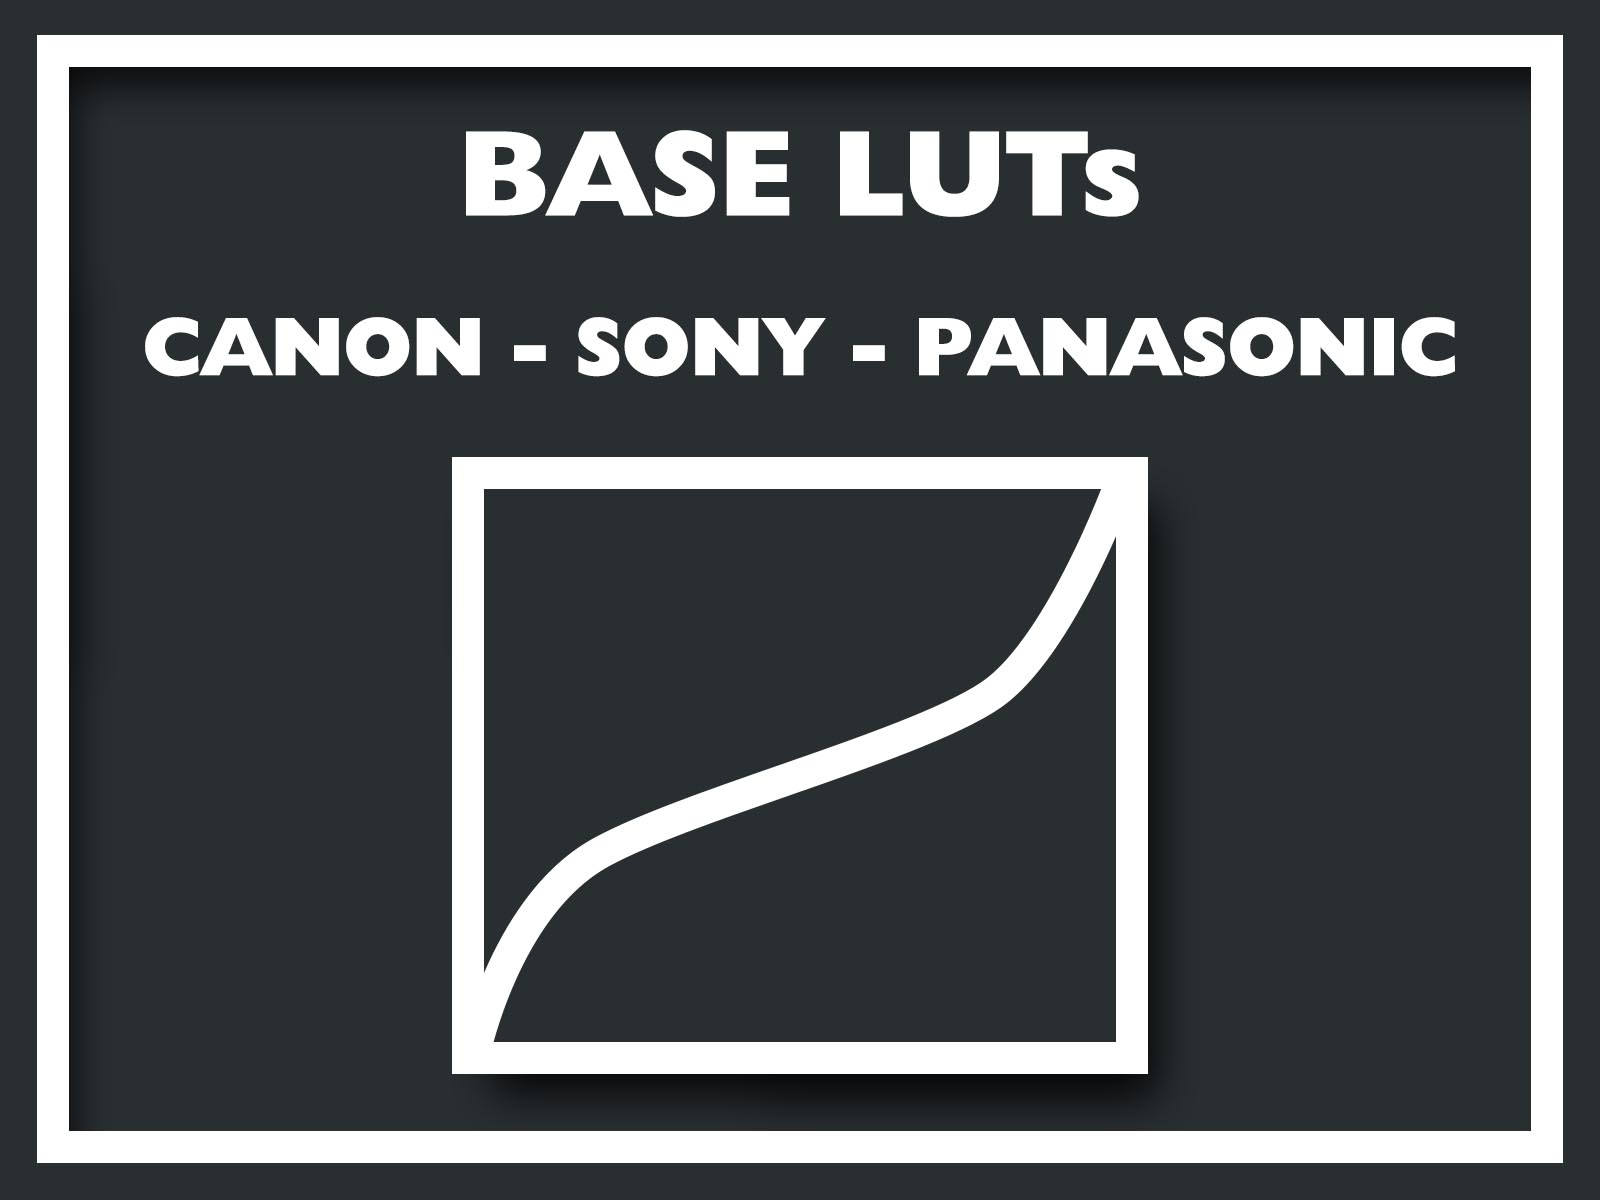 List of most popular Canon, Sony, Panasonic FREE camera Base LUTs